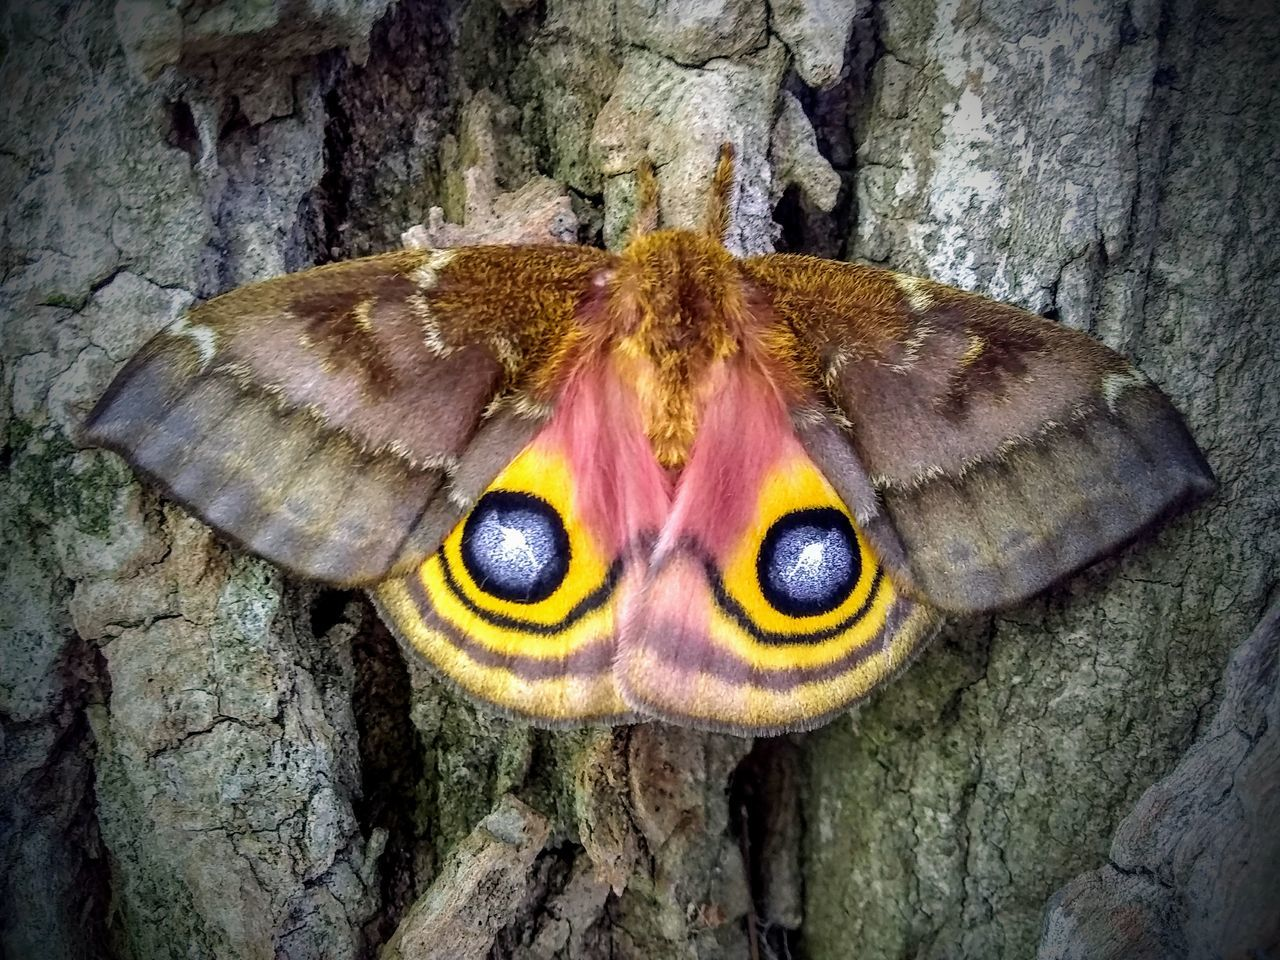 animal themes, animal, one animal, animal wildlife, animals in the wild, close-up, insect, animal body part, invertebrate, no people, tree trunk, trunk, nature, day, eye, tree, textured, moth, outdoors, zoology, animal wing, animal eye, animal head, butterfly - insect